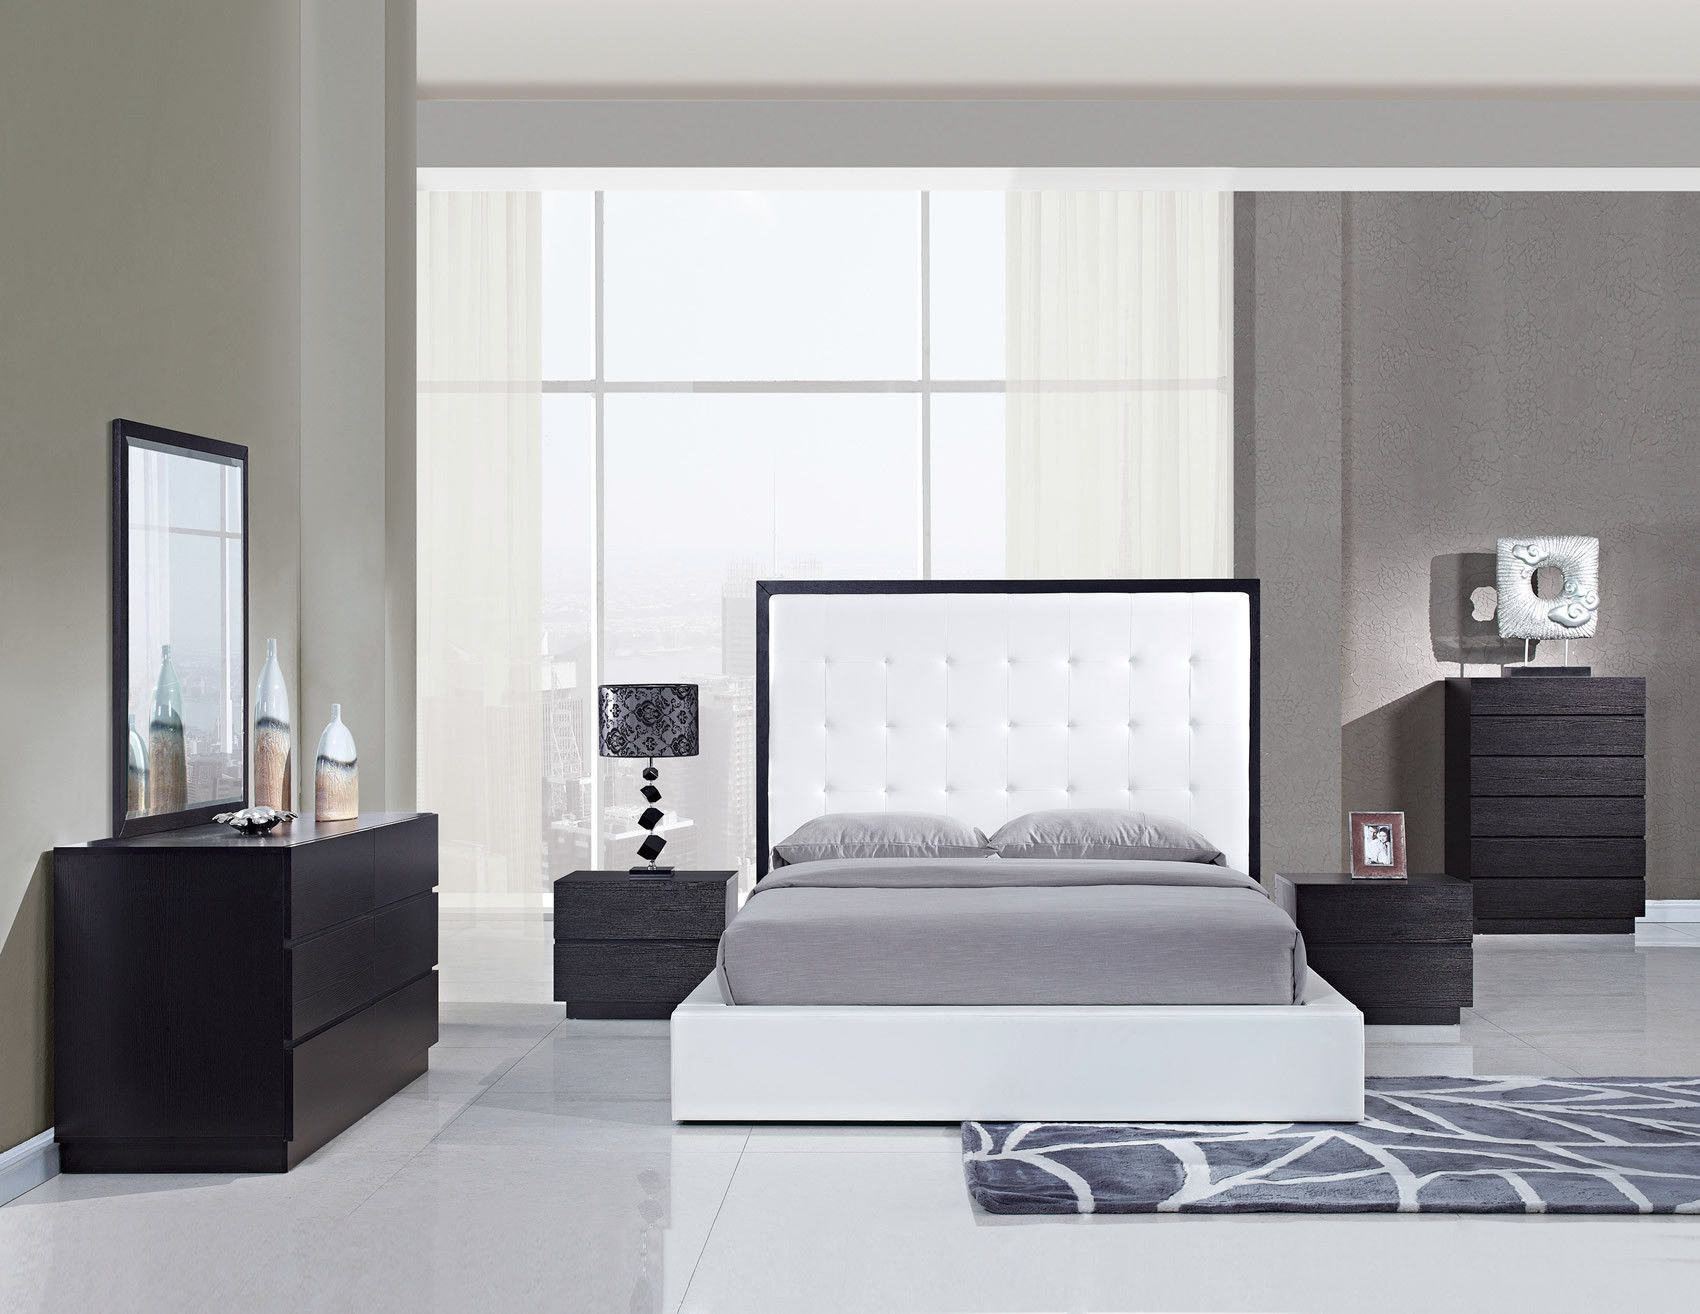 Metro White Bedroom Set is part of White bedroom Set - The Metro Bedroom Collection is made of all oak wood veneers finished in wenge  The grand headboard and footboards are finished in a crisp white leatherette  This collection will provide a city living feel to any home    Set includes Bed (Queen or King size), 2 Nightstands, Dresser, and Mirror  Chest is available sepa